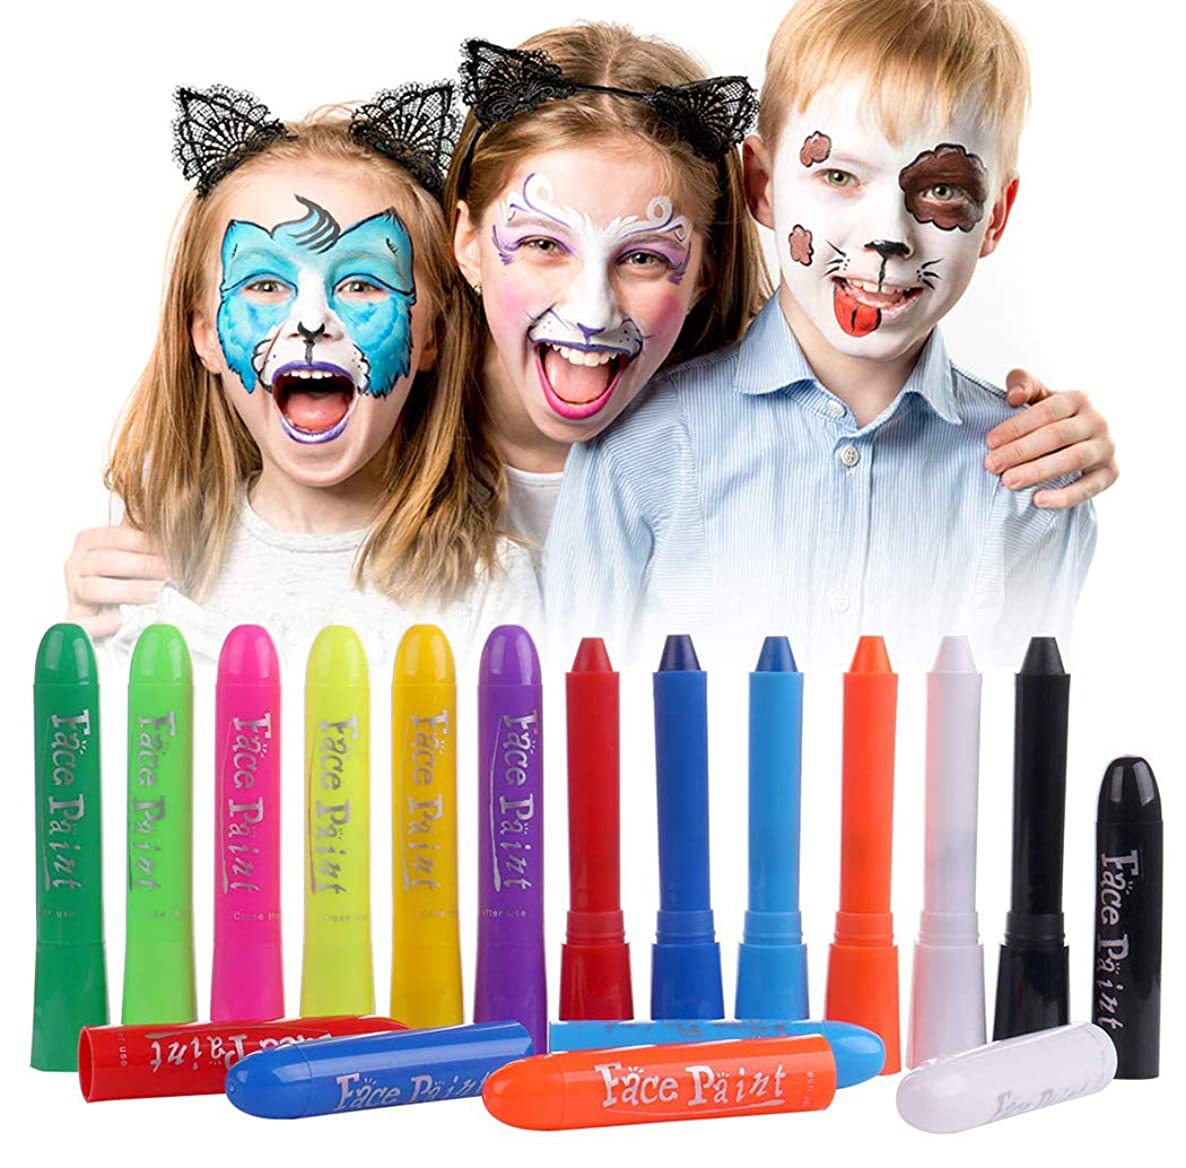 Luxbon Face Paint Crayons Face Painting Kits 12 Colors Kids Face Painting Body Paint Kids Makeup Washable Face Paint for Kids Safe & Non-Toxic Face and Body Crayons for Party Makeup